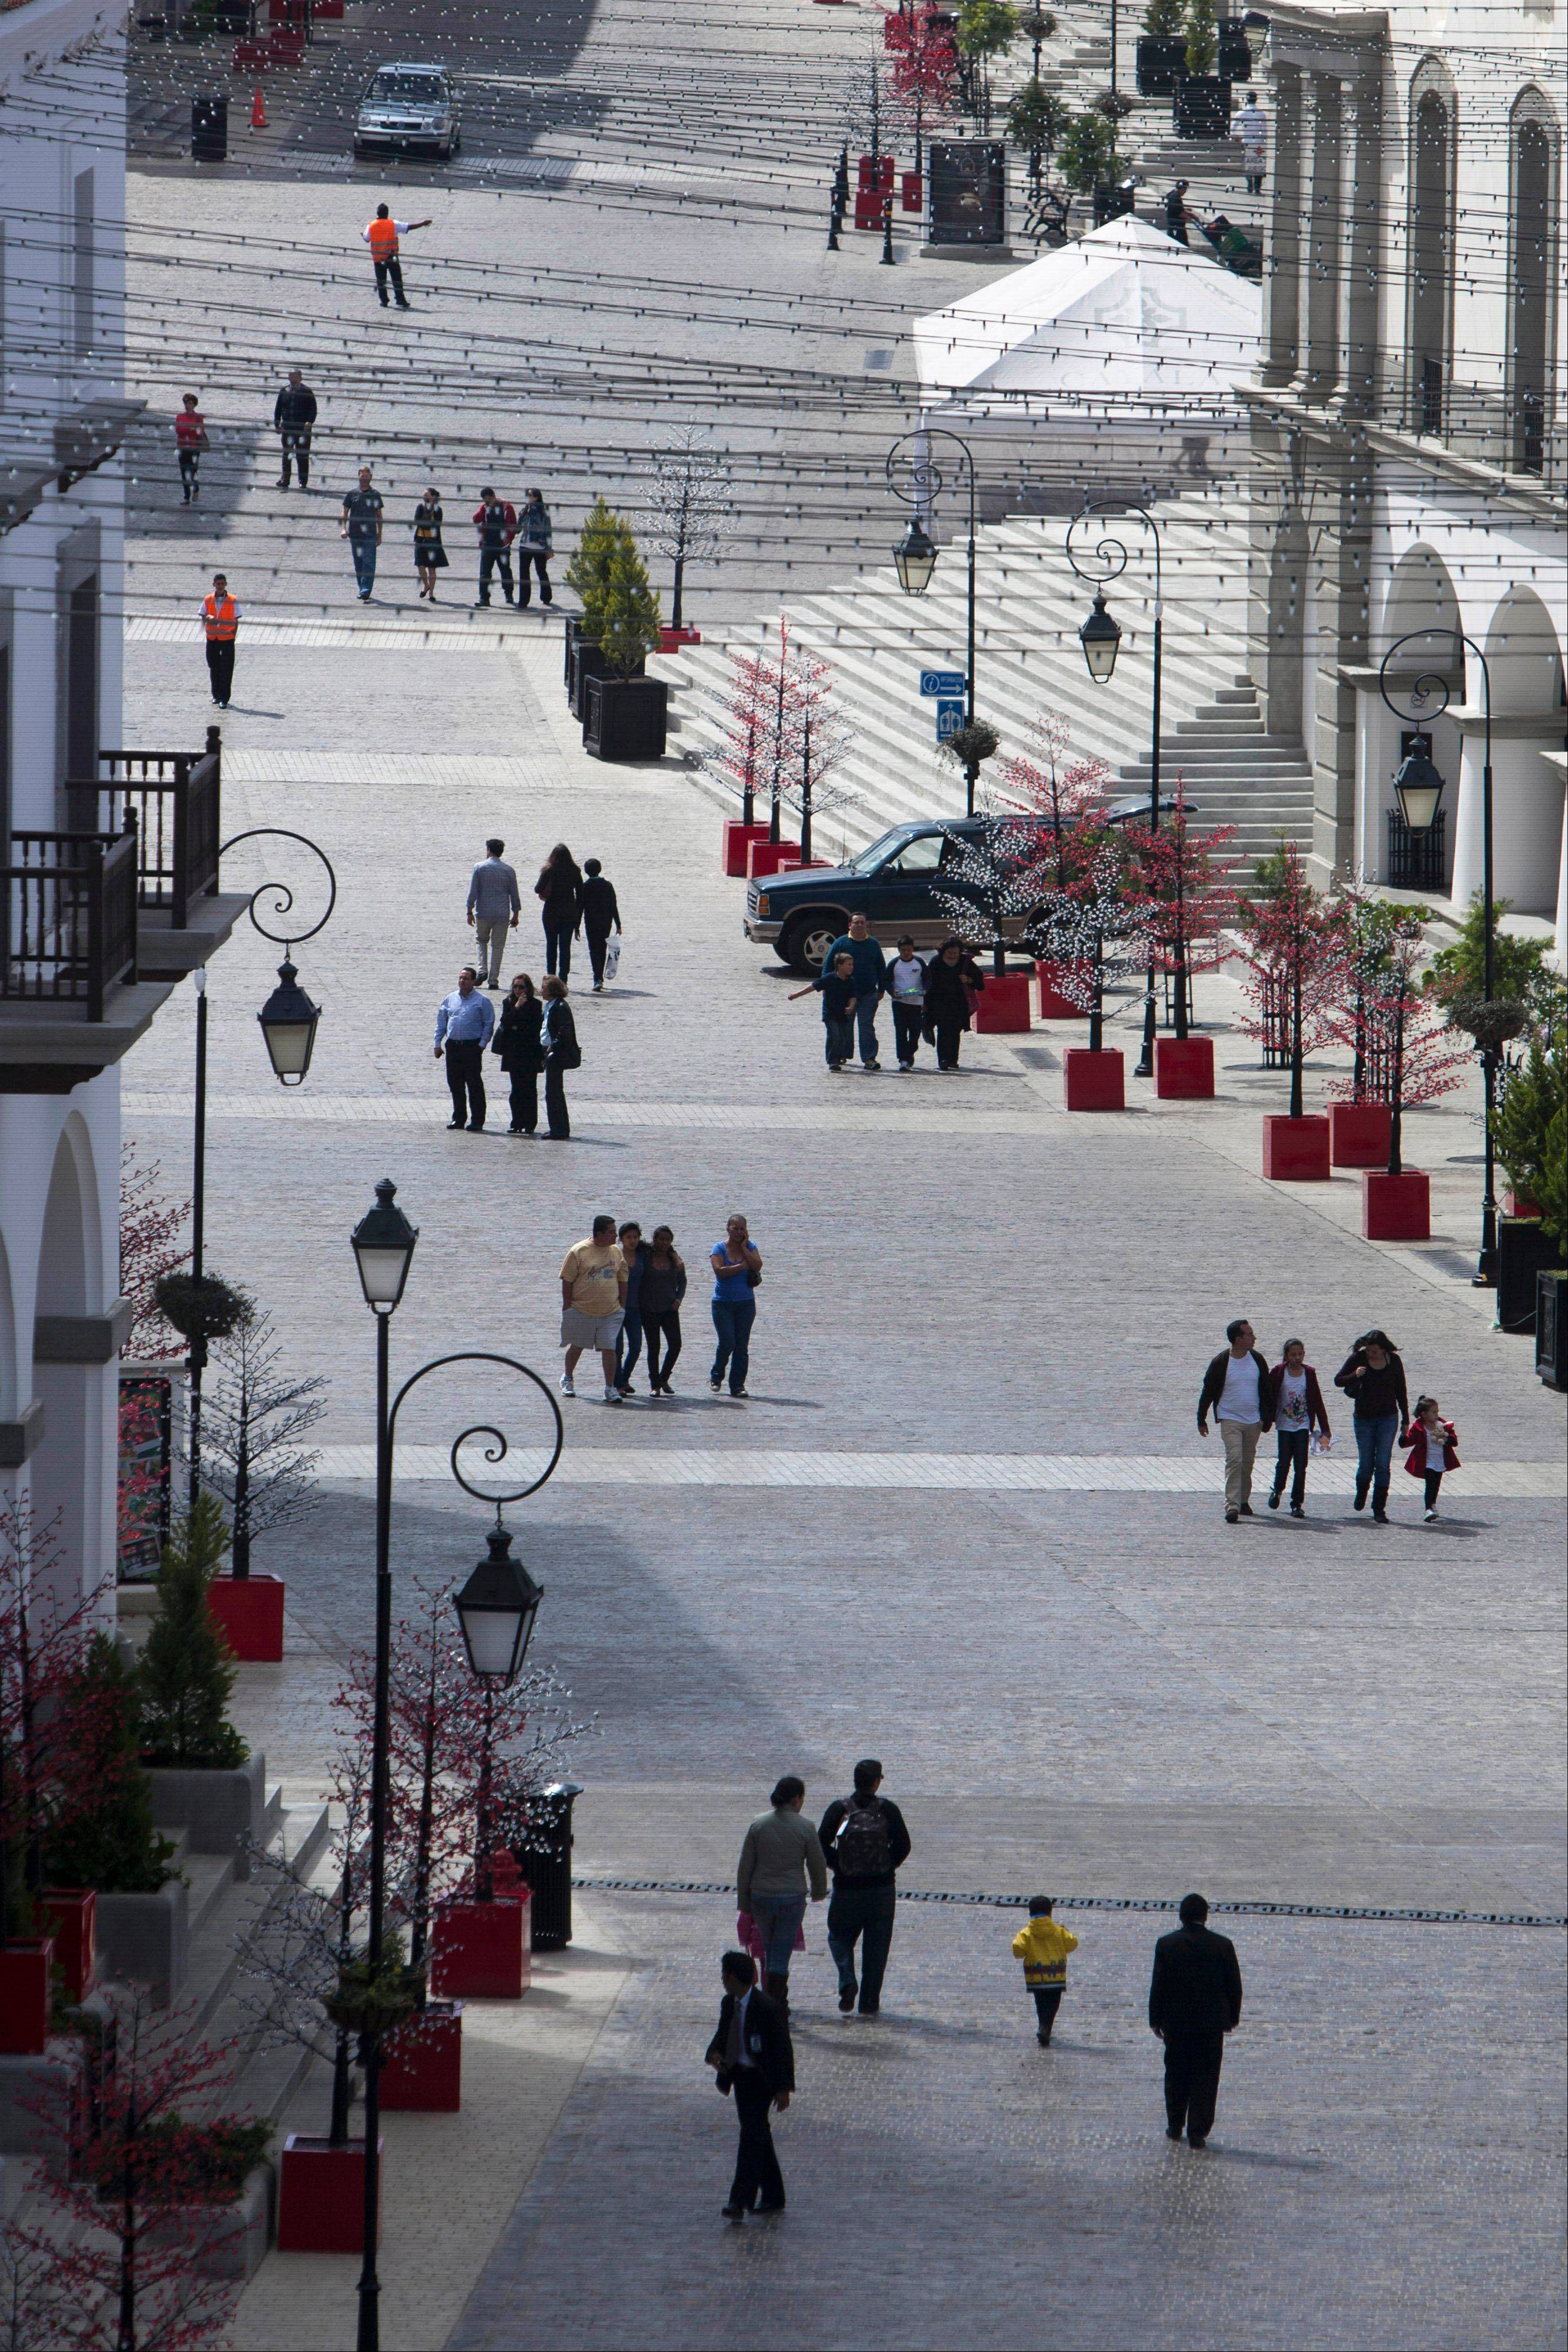 People walk in Paseo Cayala, a nearly independent city on the edges of Guatemala City. Some urbanists and architects are skeptical the project can thrive over the long term in a country with one of the world's highest homicide rates and with roughly half of its 14 million people in poverty.